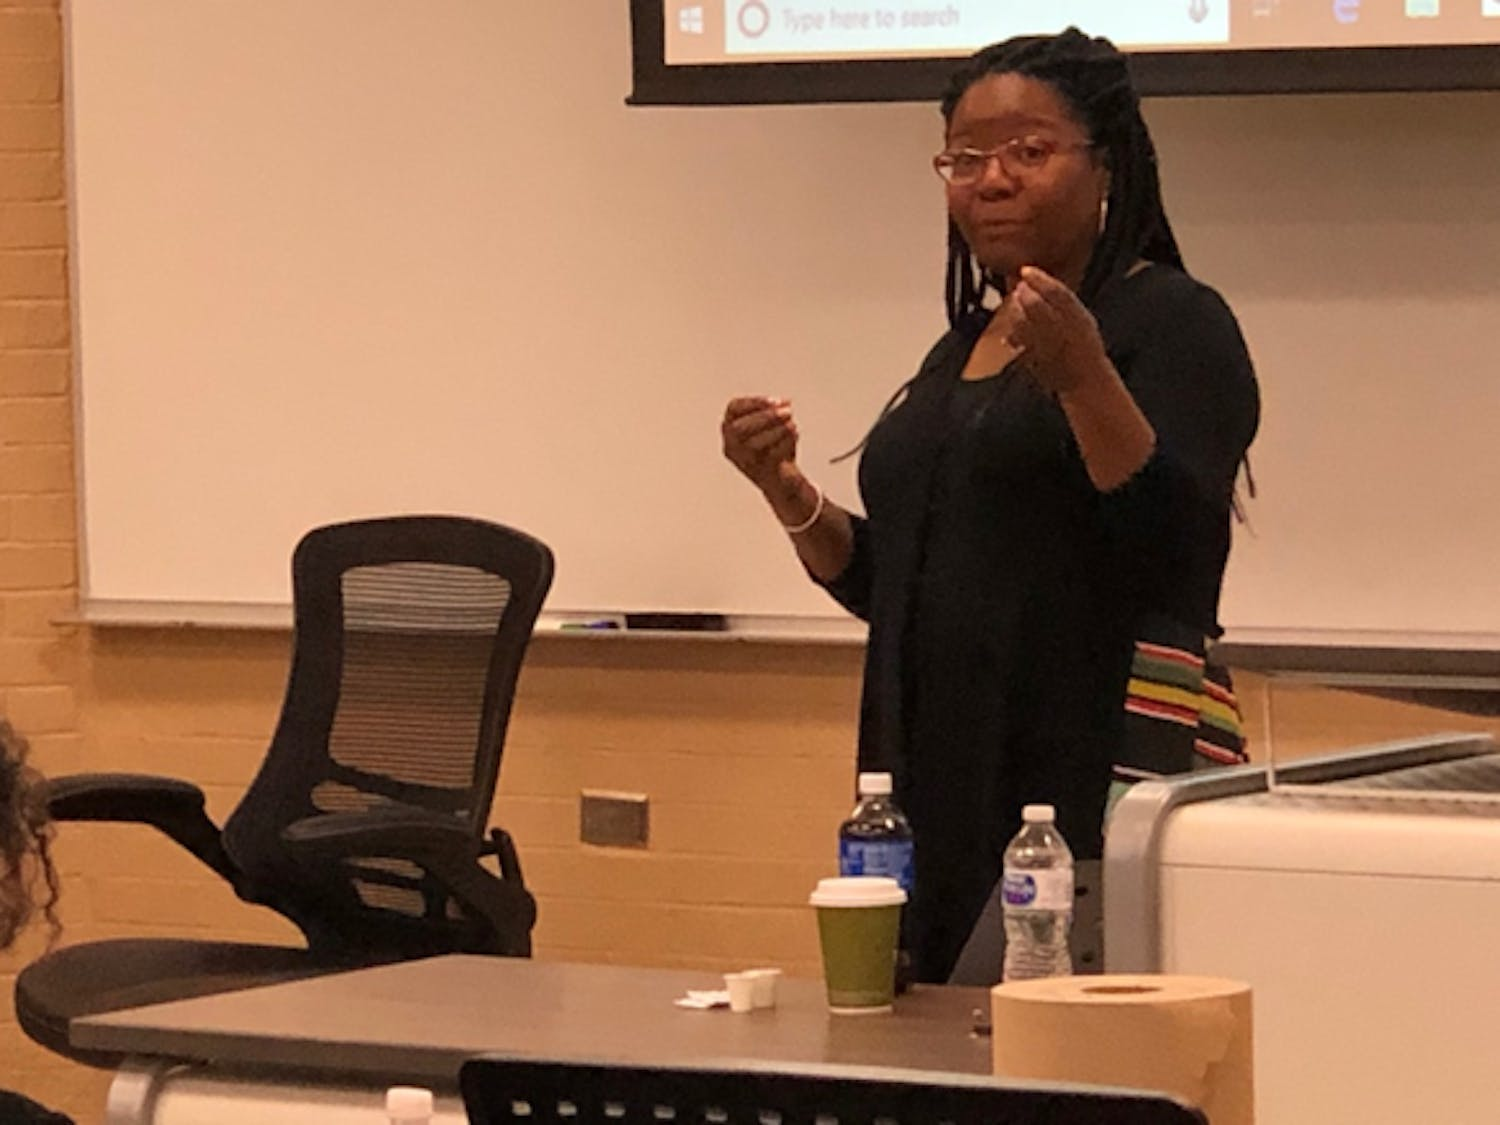 Trina Jones, professor of law at Duke University School of Law, gives a lecture on the intersectionality of race, class and gender as part of the Critical Race Theory Symposium.